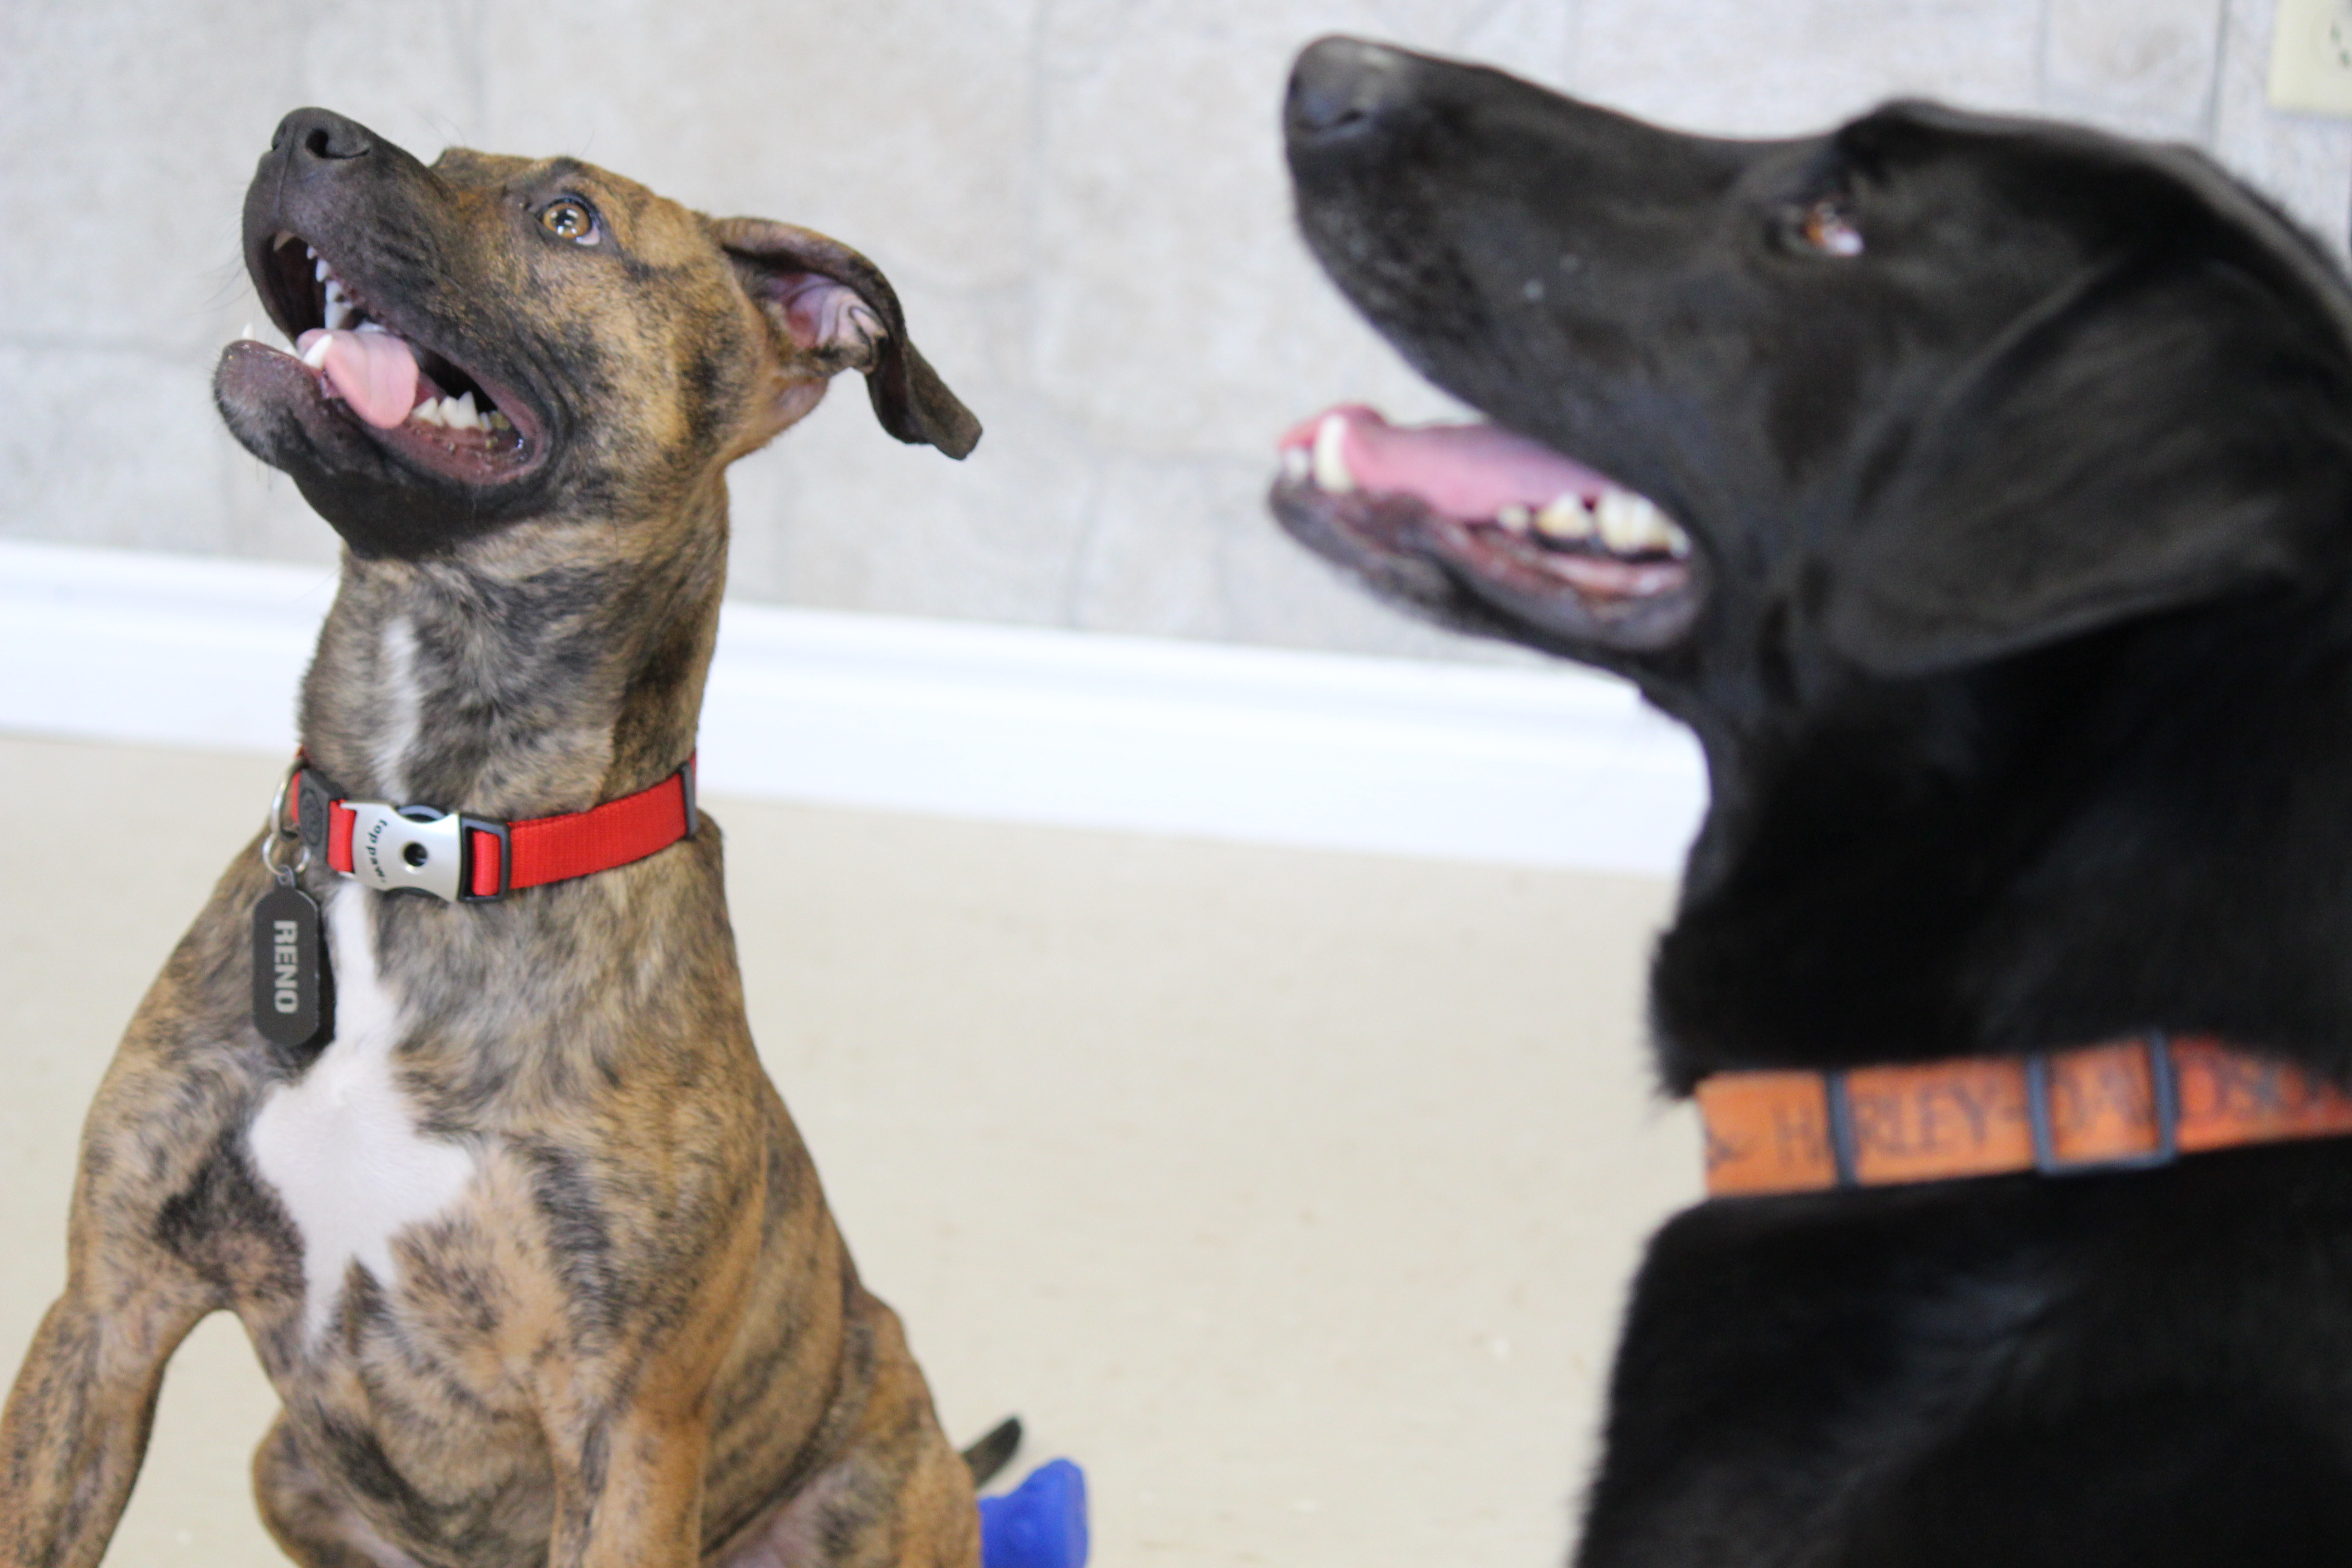 Reno, left, and Jackson, right, were both adopted by Derek at different times after being brought to the Windsor Essex Humane Society for being malnourished, March 26, 2015. (Photo by Jason Viau)